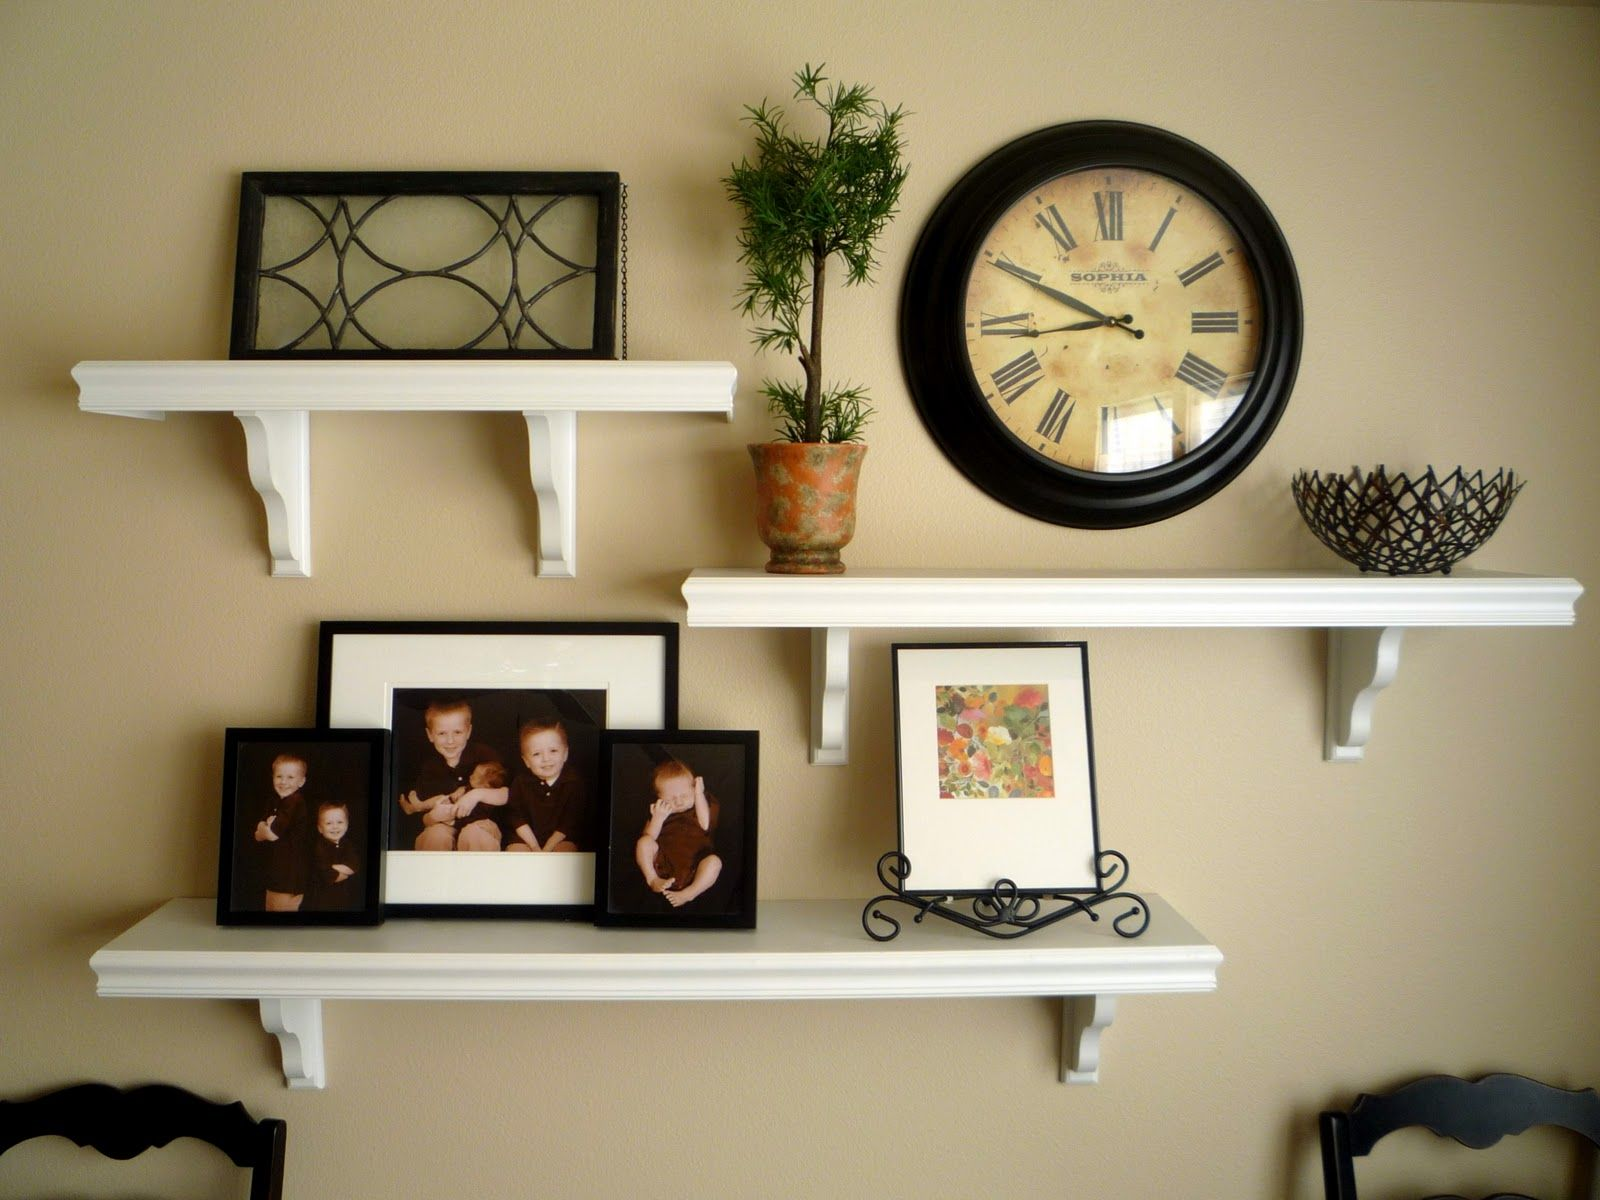 Stylish DIY Floating Shelves & Wall Shelves (Easy) | home ...